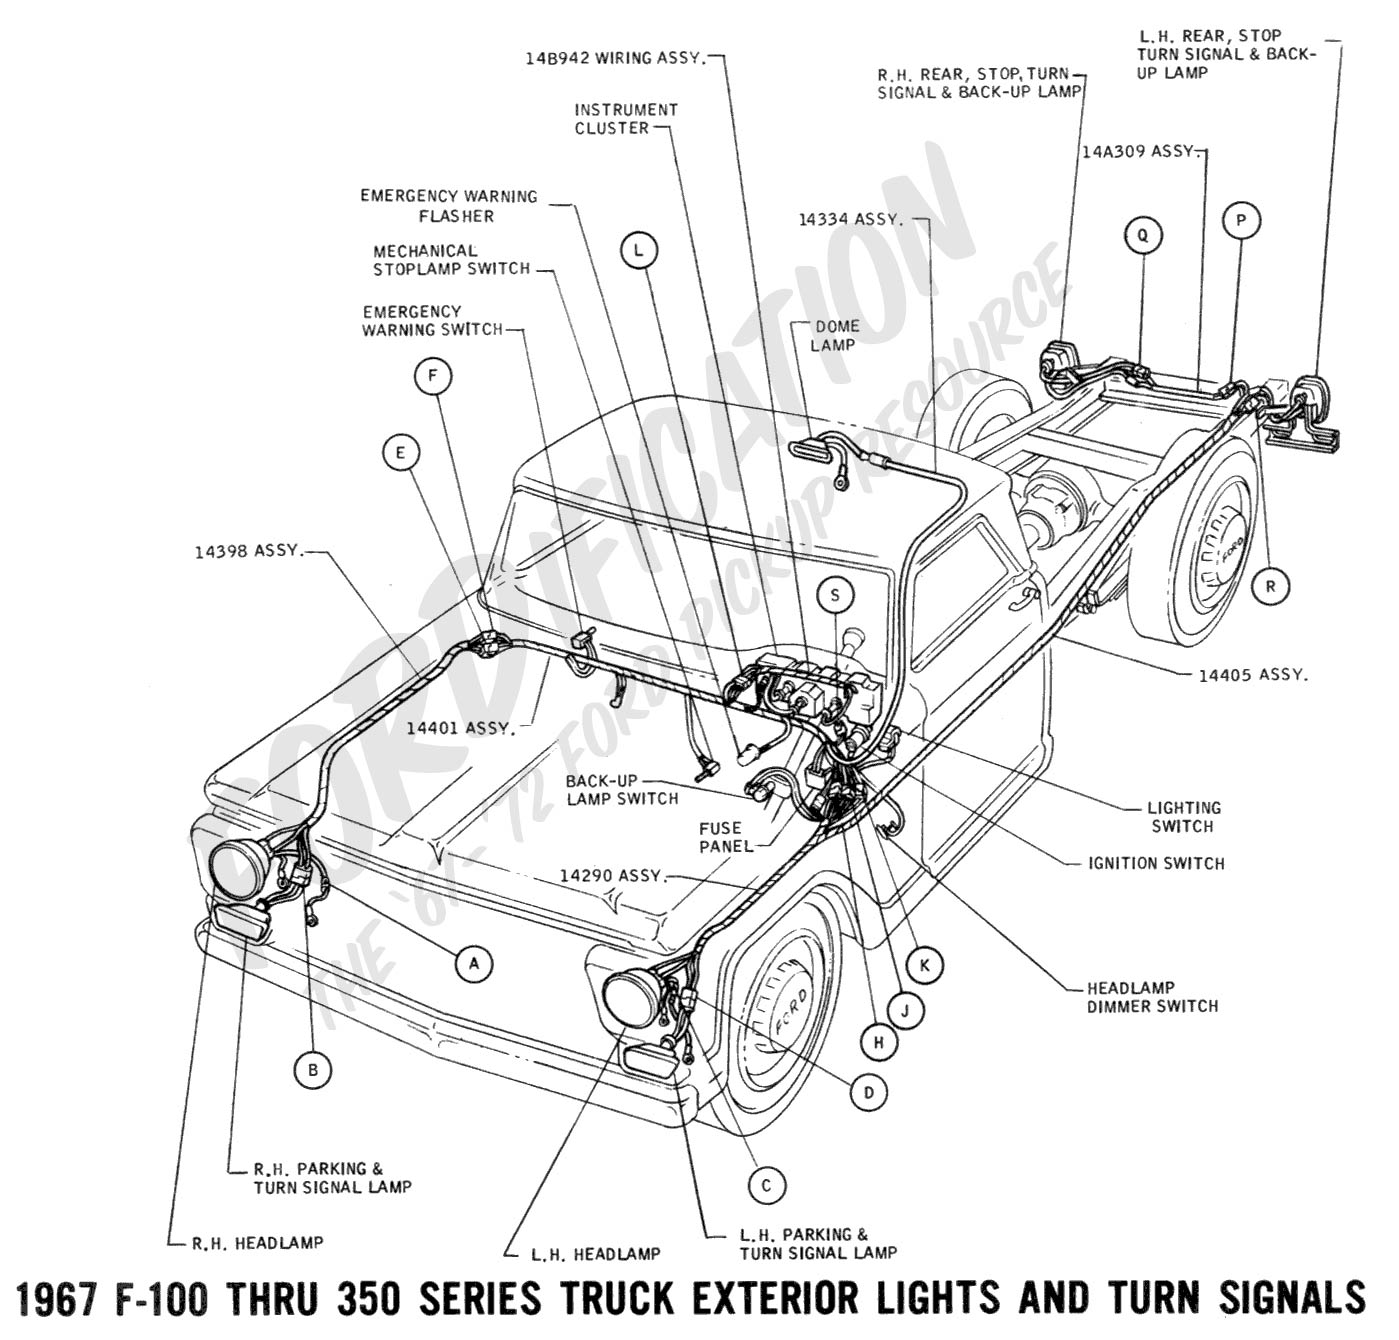 wiring 1967extlights01 ford truck technical drawings and schematics section h wiring 1999 ford ranger xlt wiring diagrams at bayanpartner.co